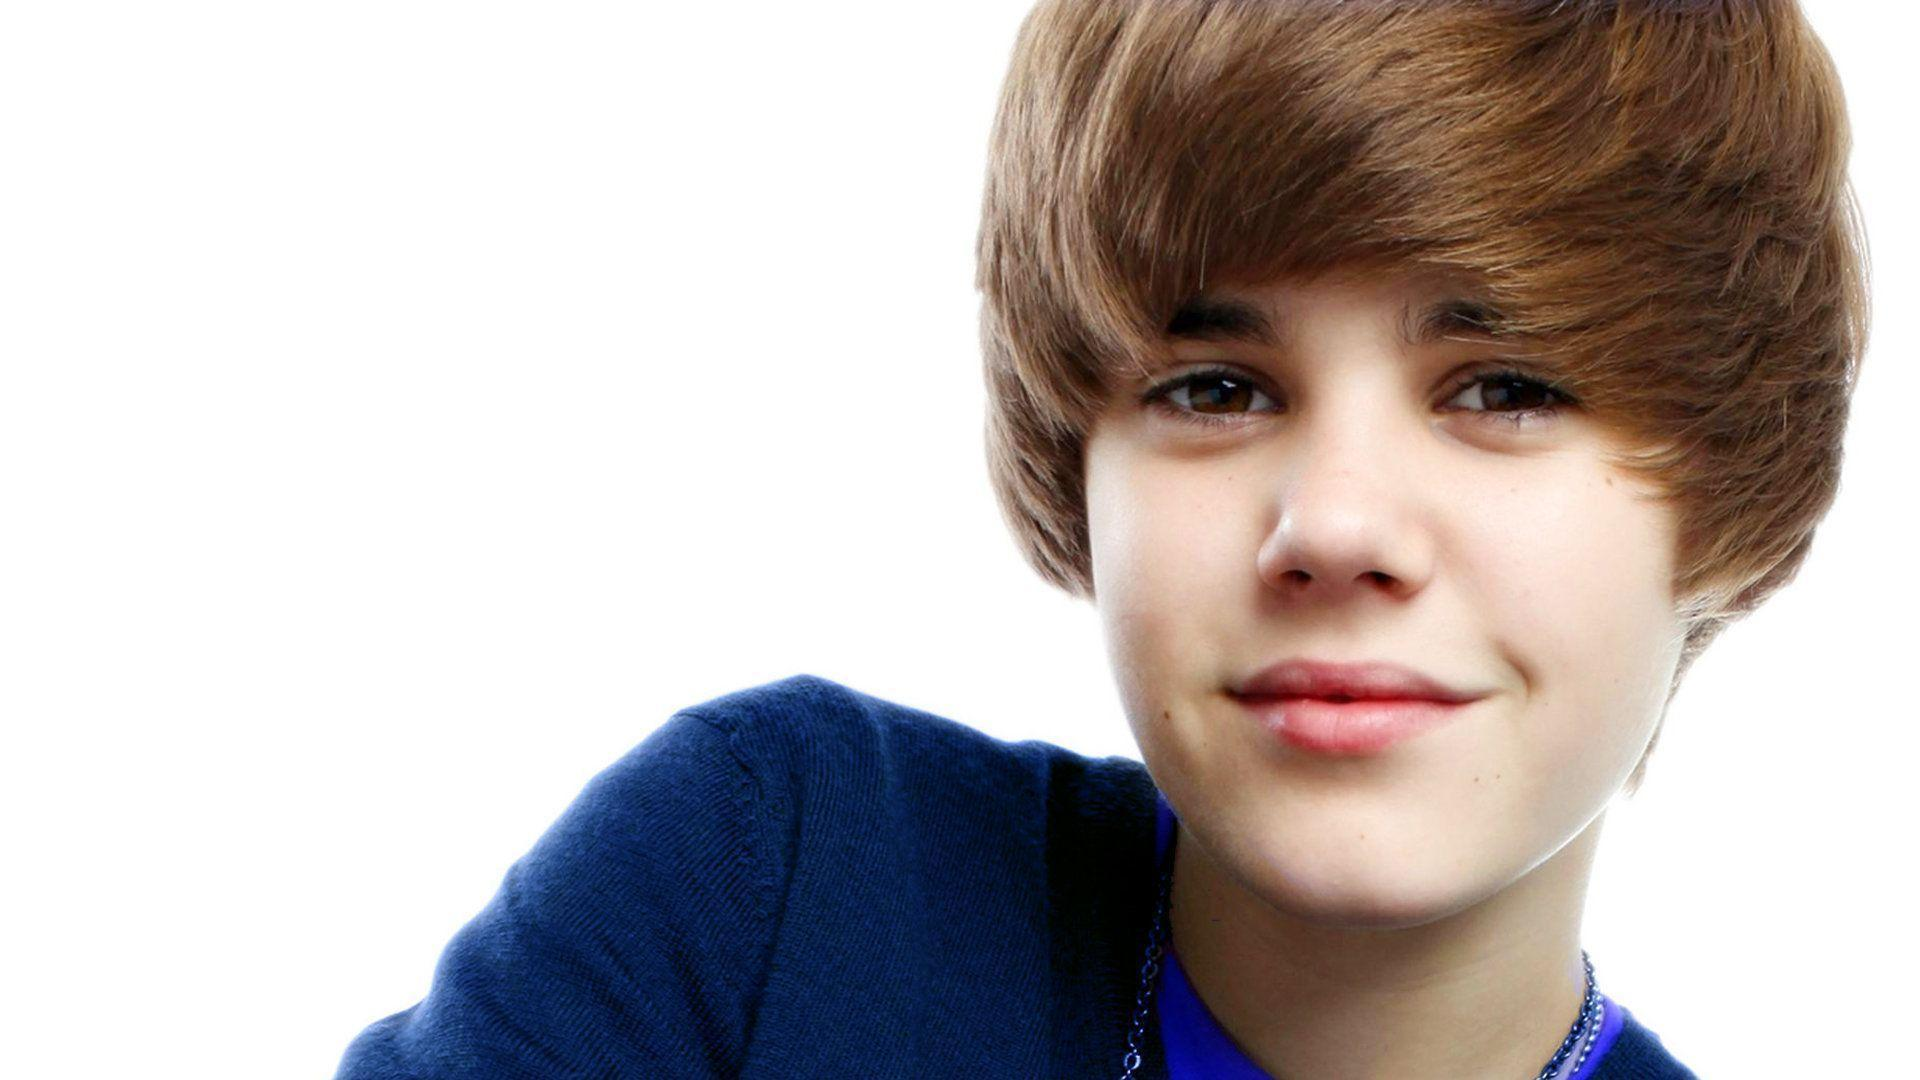 Justin Bieber Young Wallpapers